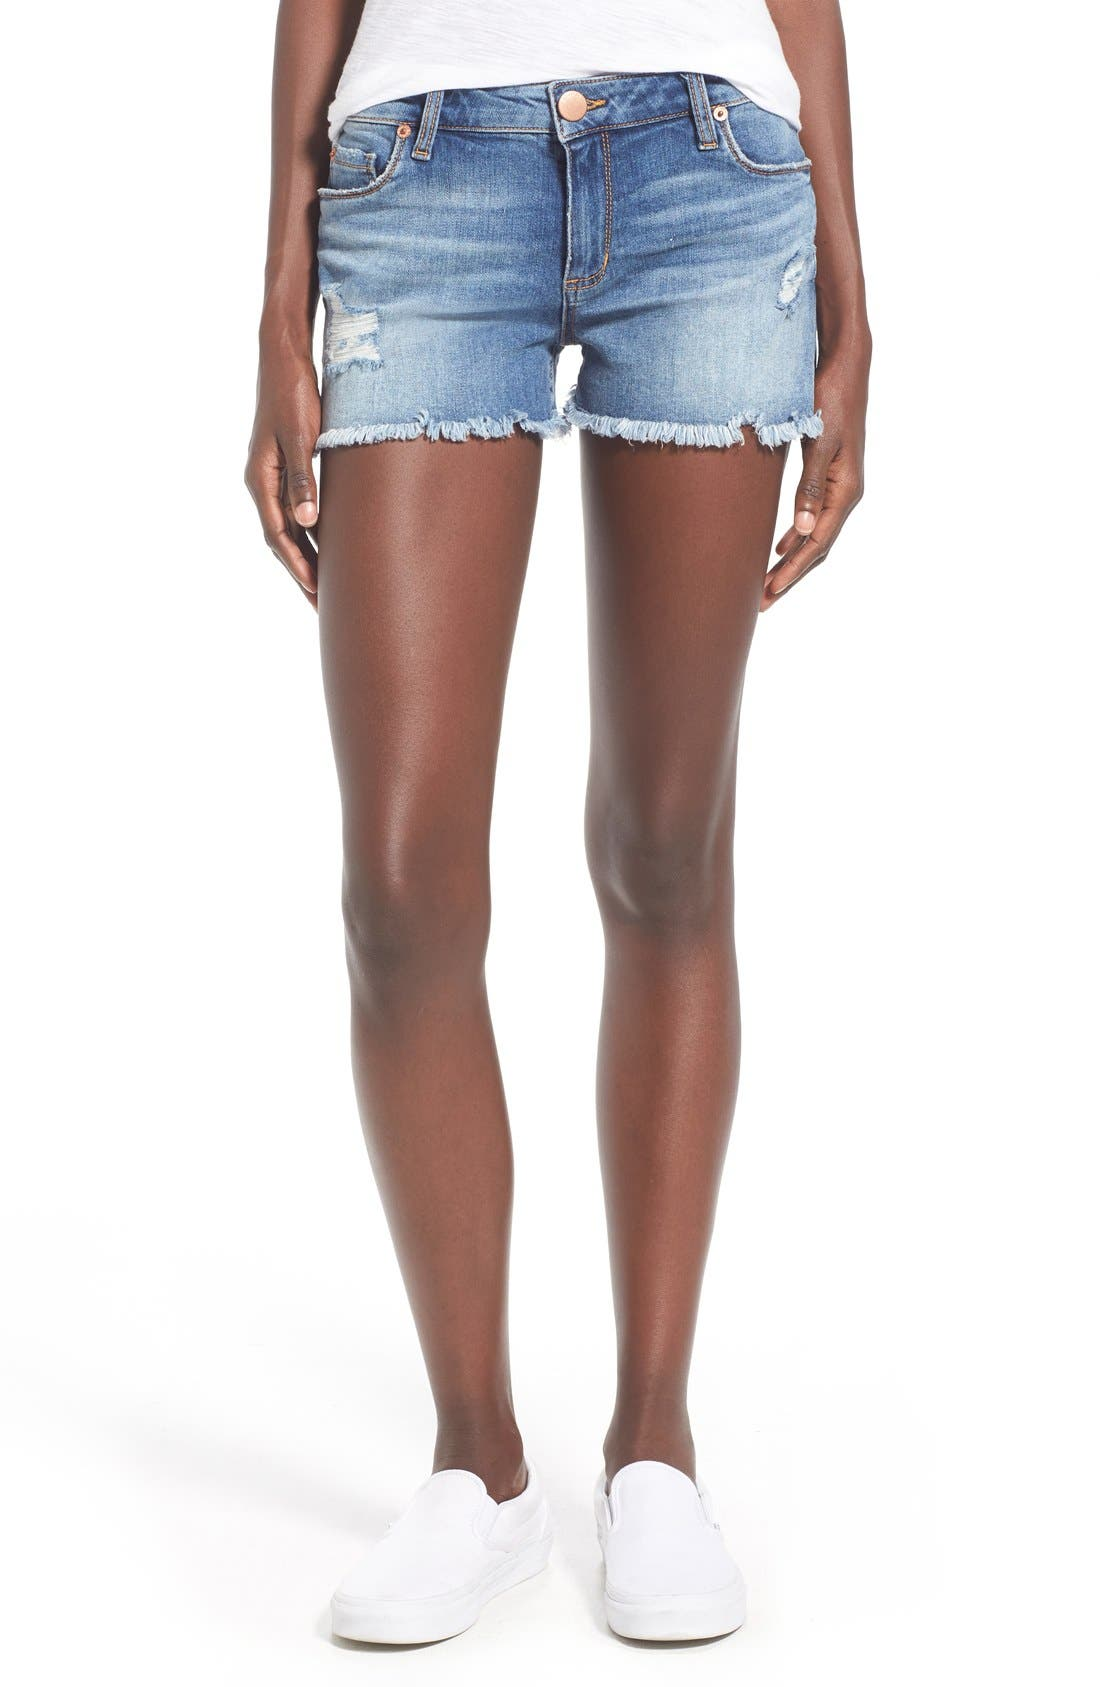 Alternate Image 1 Selected - STS Blue Distressed Cutoff Denim Shorts